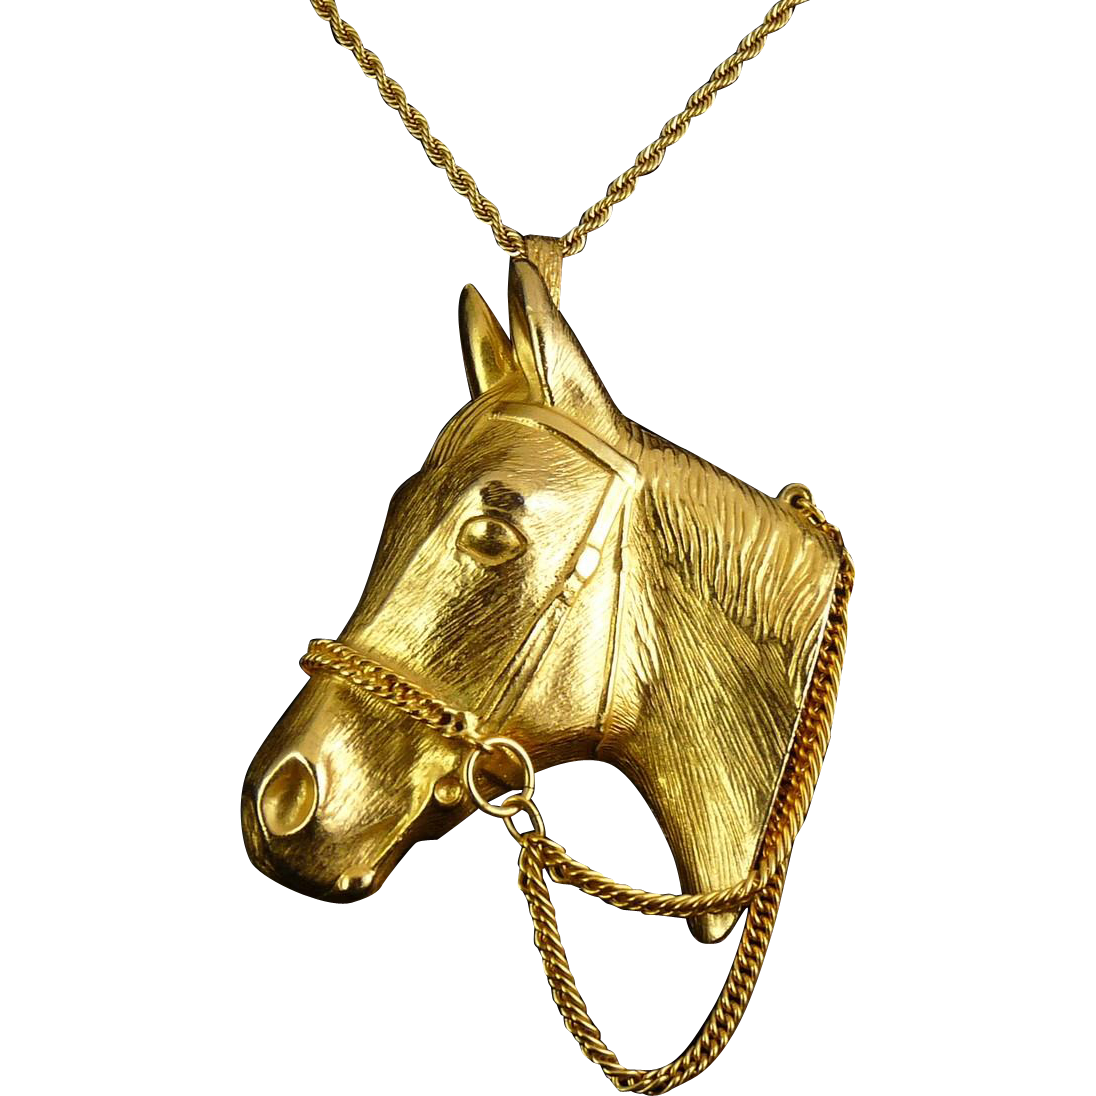 Giant Horse Head with Bridle Chains Pendant Necklace - Vintage